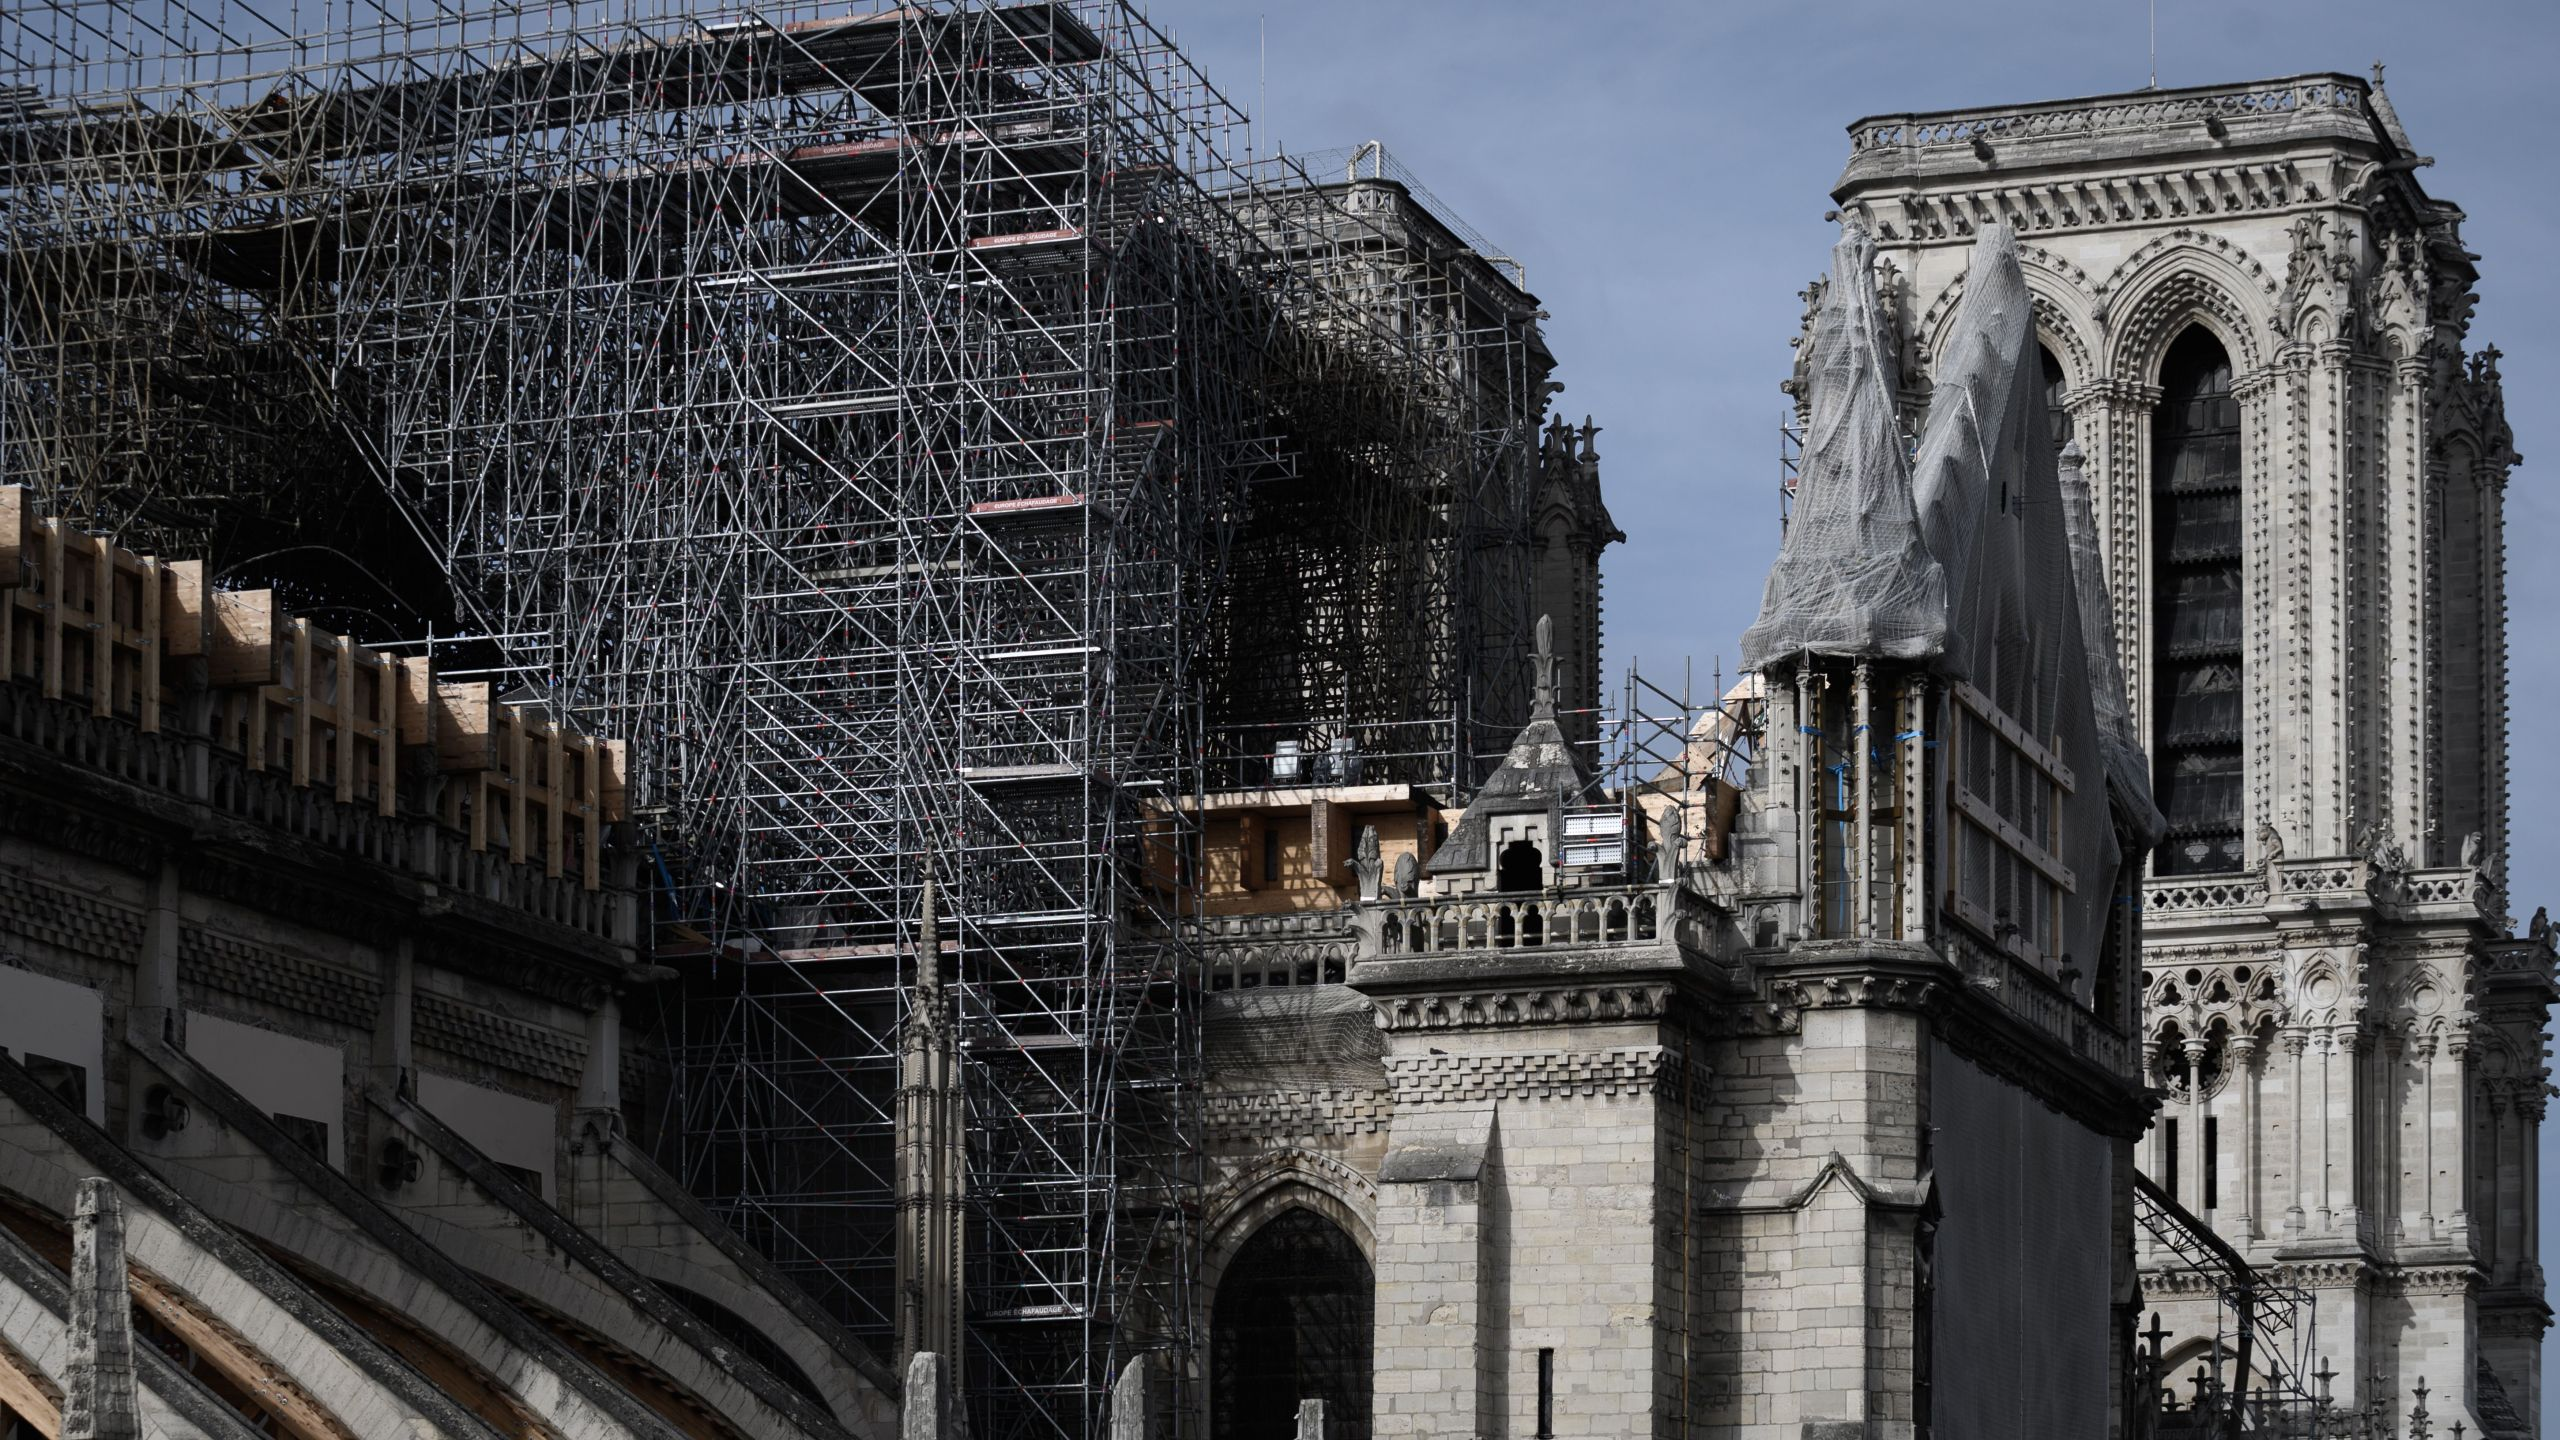 A picture taken on Oct. 4, 2019 shows the Notre-Dame Cathedral in Paris. (Credit: Philippe Lopez/AFP via Getty Images)